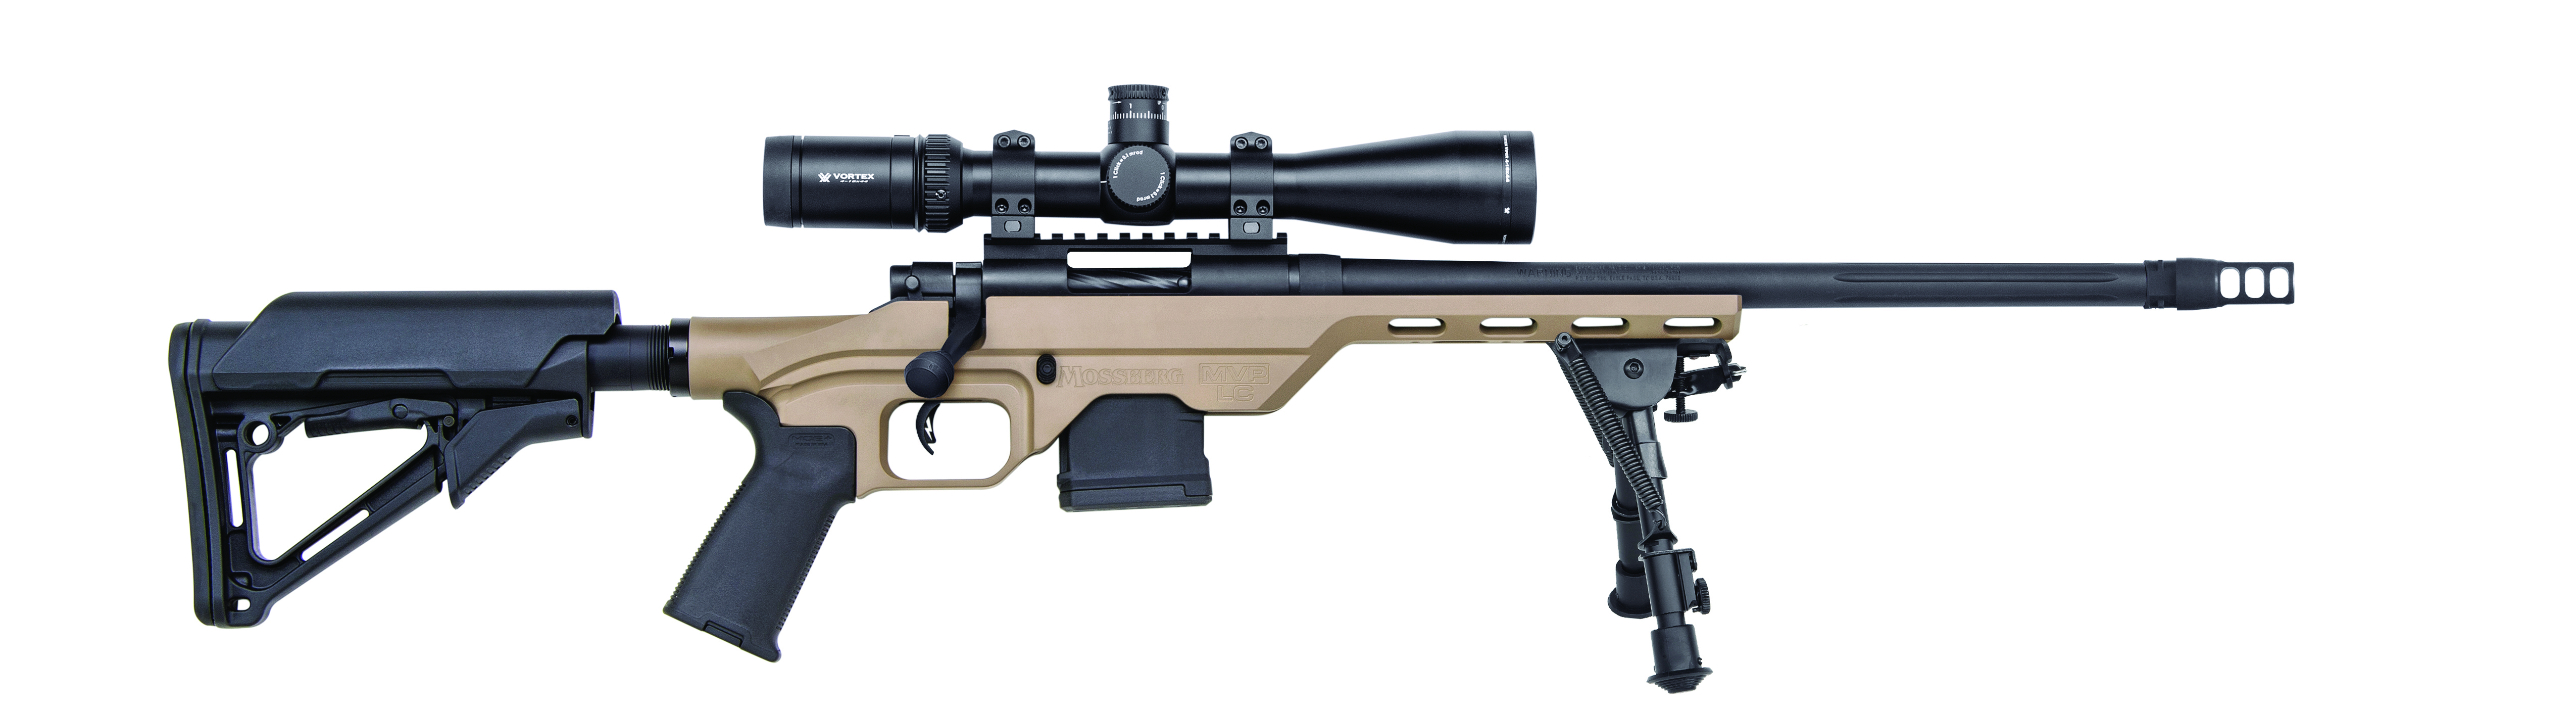 The MVP-LC is also offered in 5.56/.223. A folding bipod comes standard on both models. Image courtesy of manufacturer.